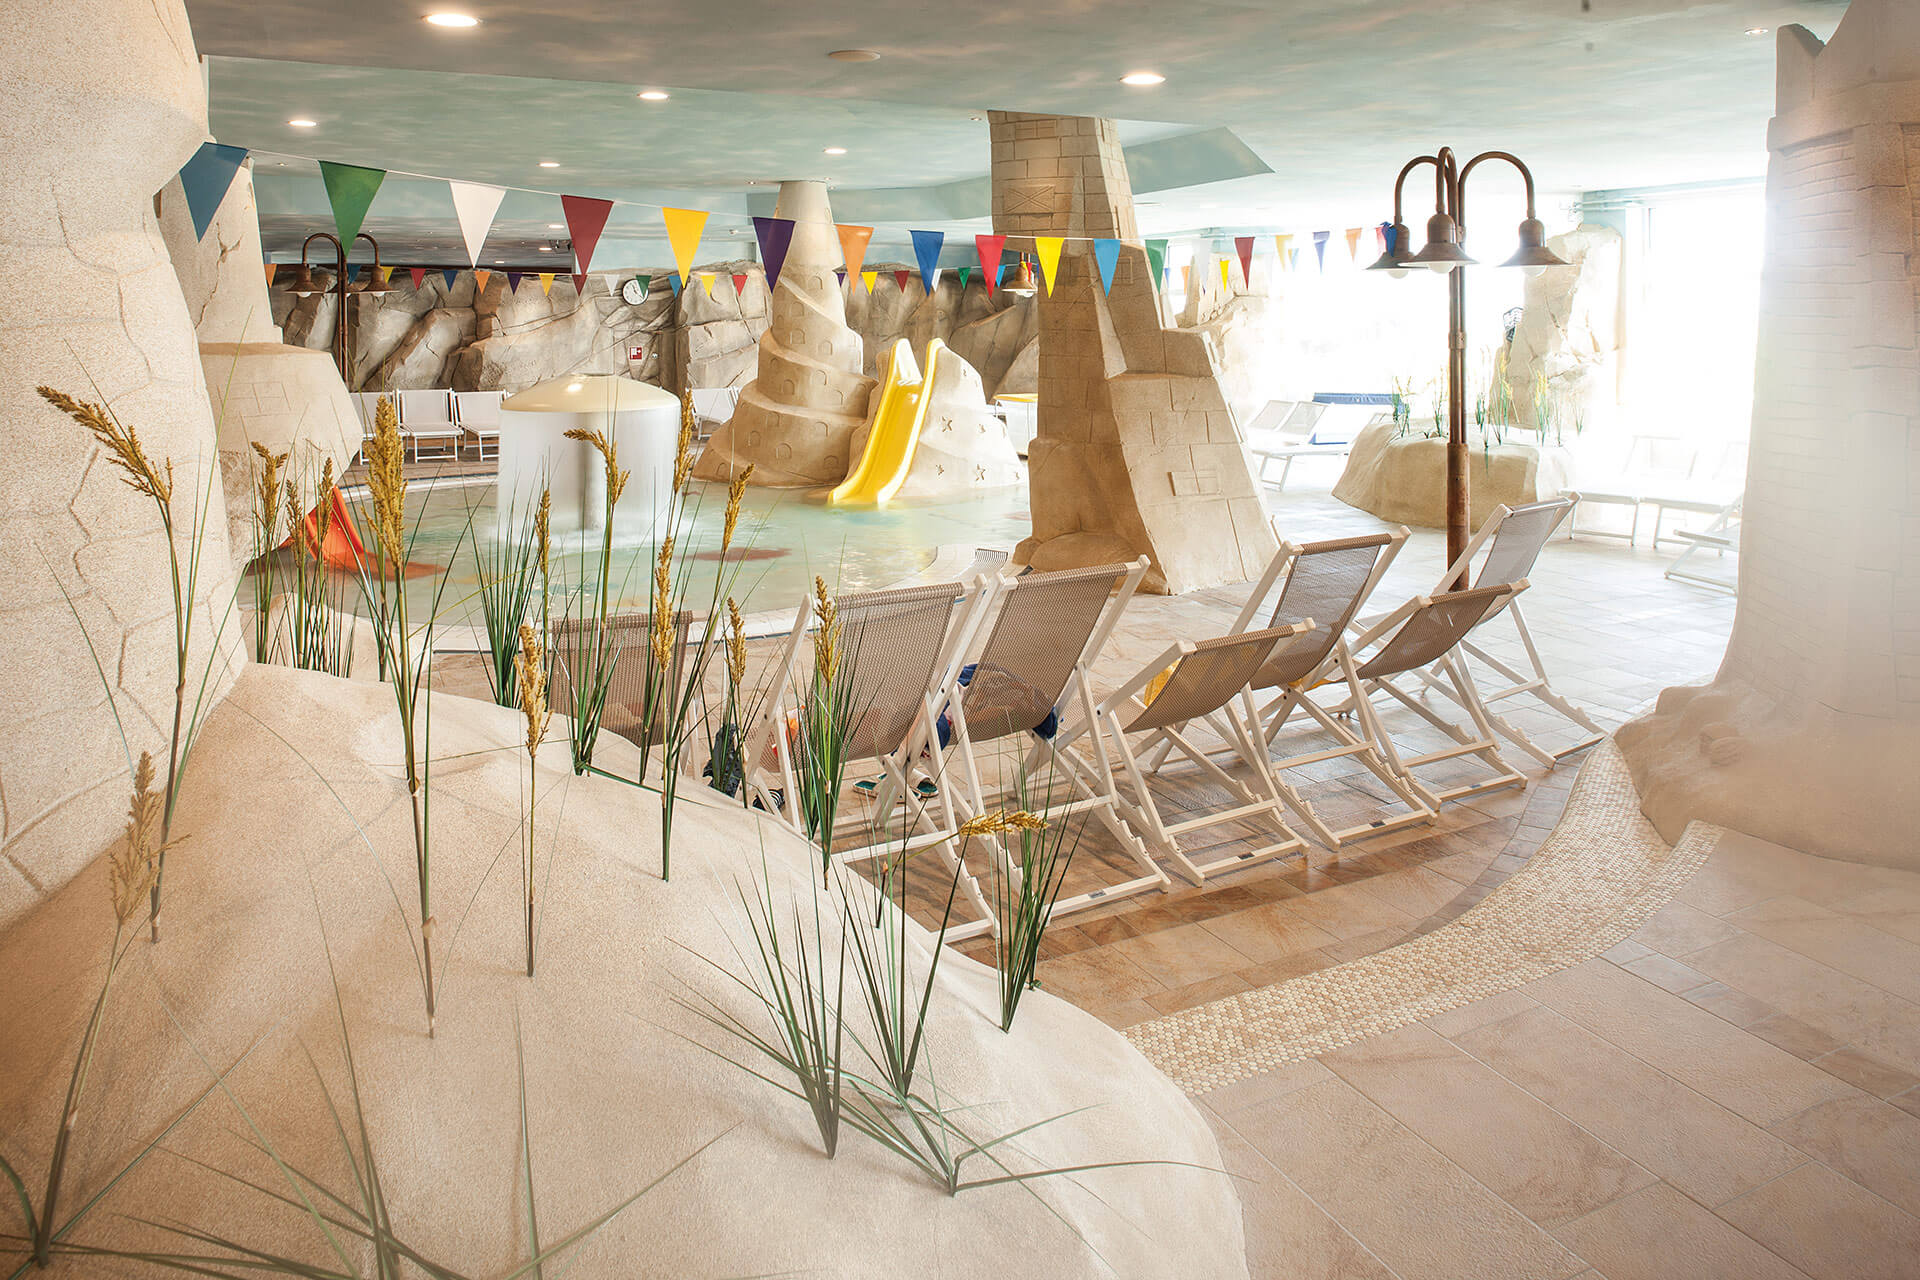 Kinderparadies in der Ostsee Therme